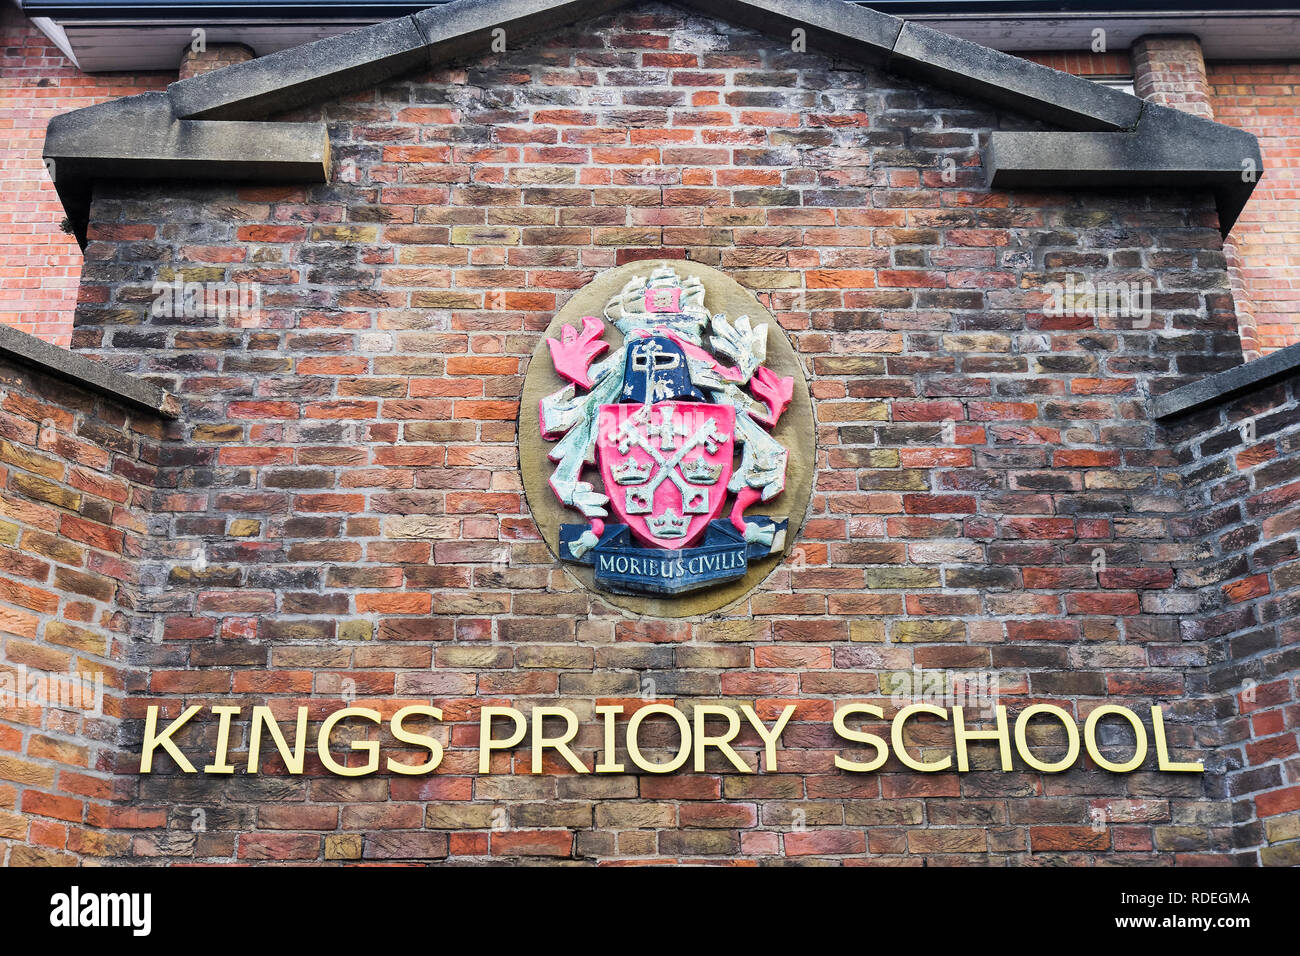 An entrance to Kings Priory School at Tynemouth, UK which was formerly The Kings School and the alma mater of Stan Laurel, Ridley Scott, Jason Plato.. - Stock Image